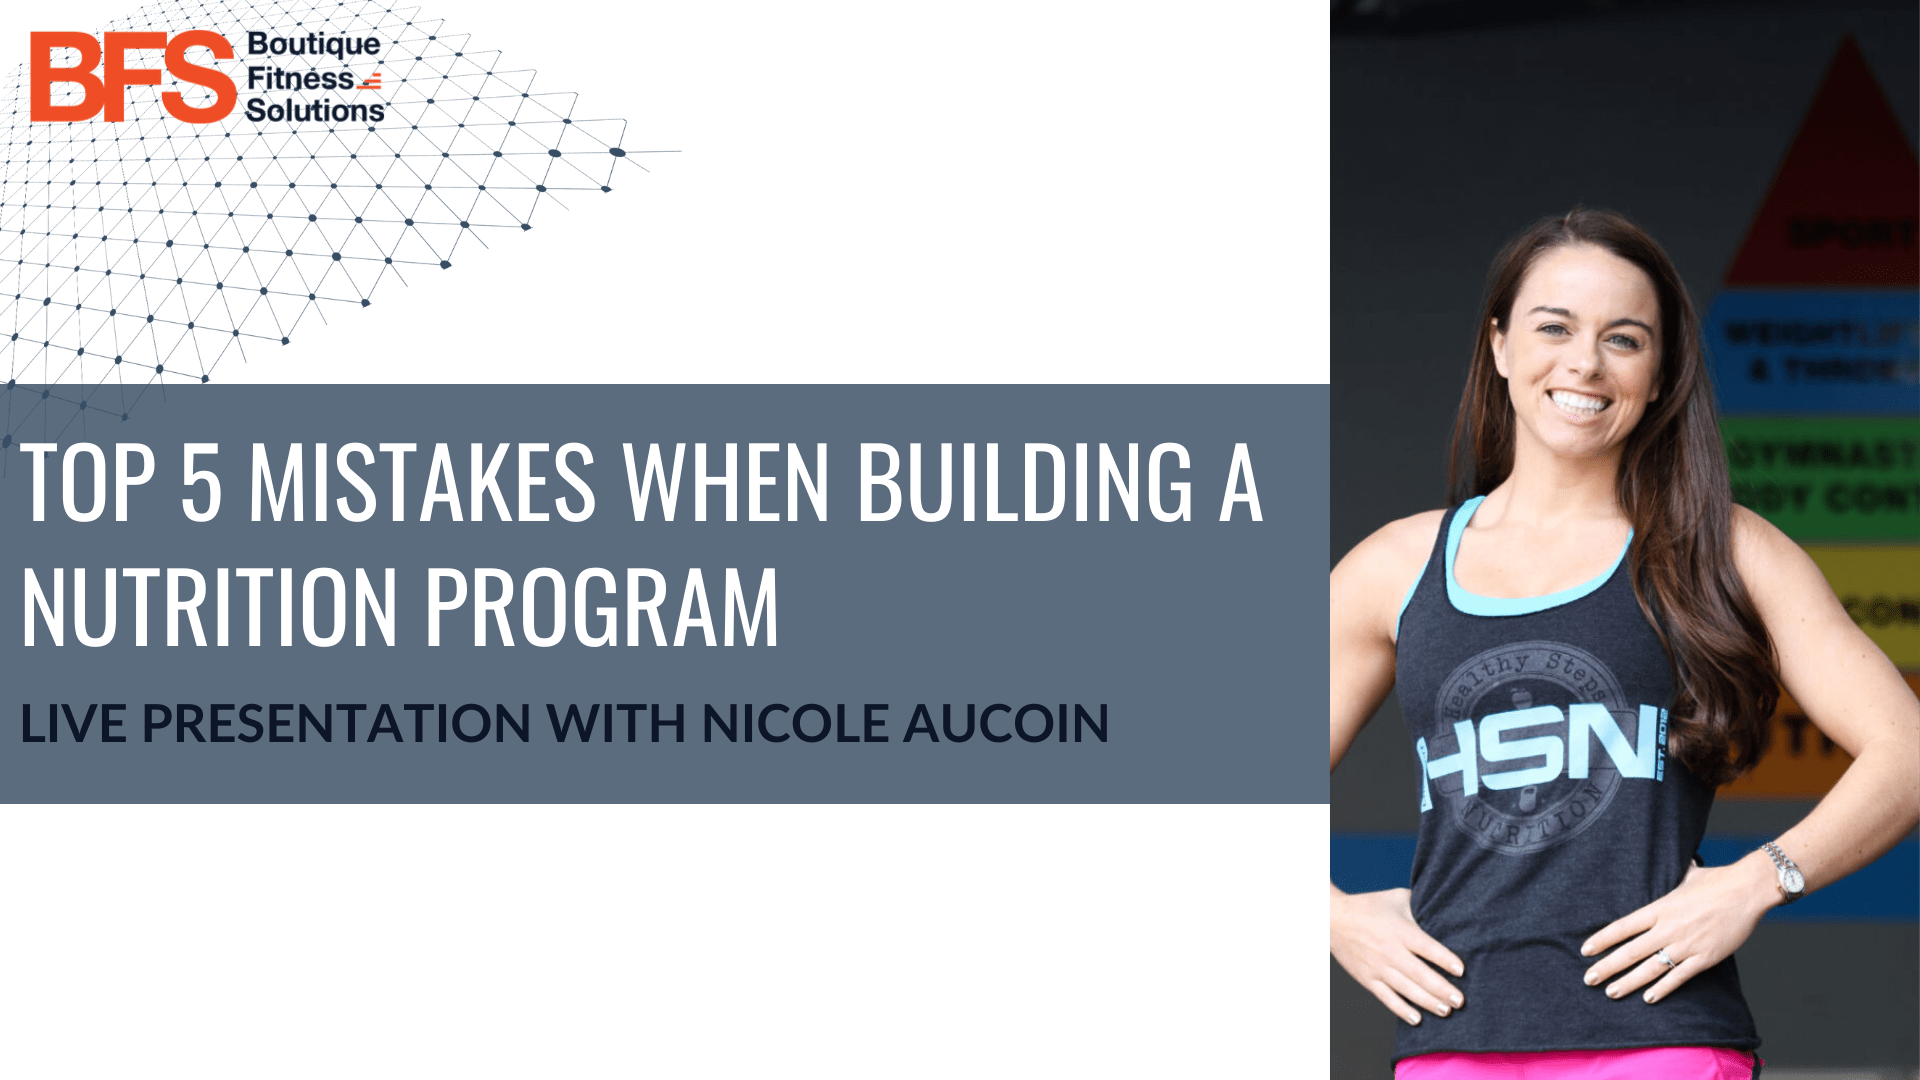 Top 5 Mistakes To Avoid When Building A Nutrition Program